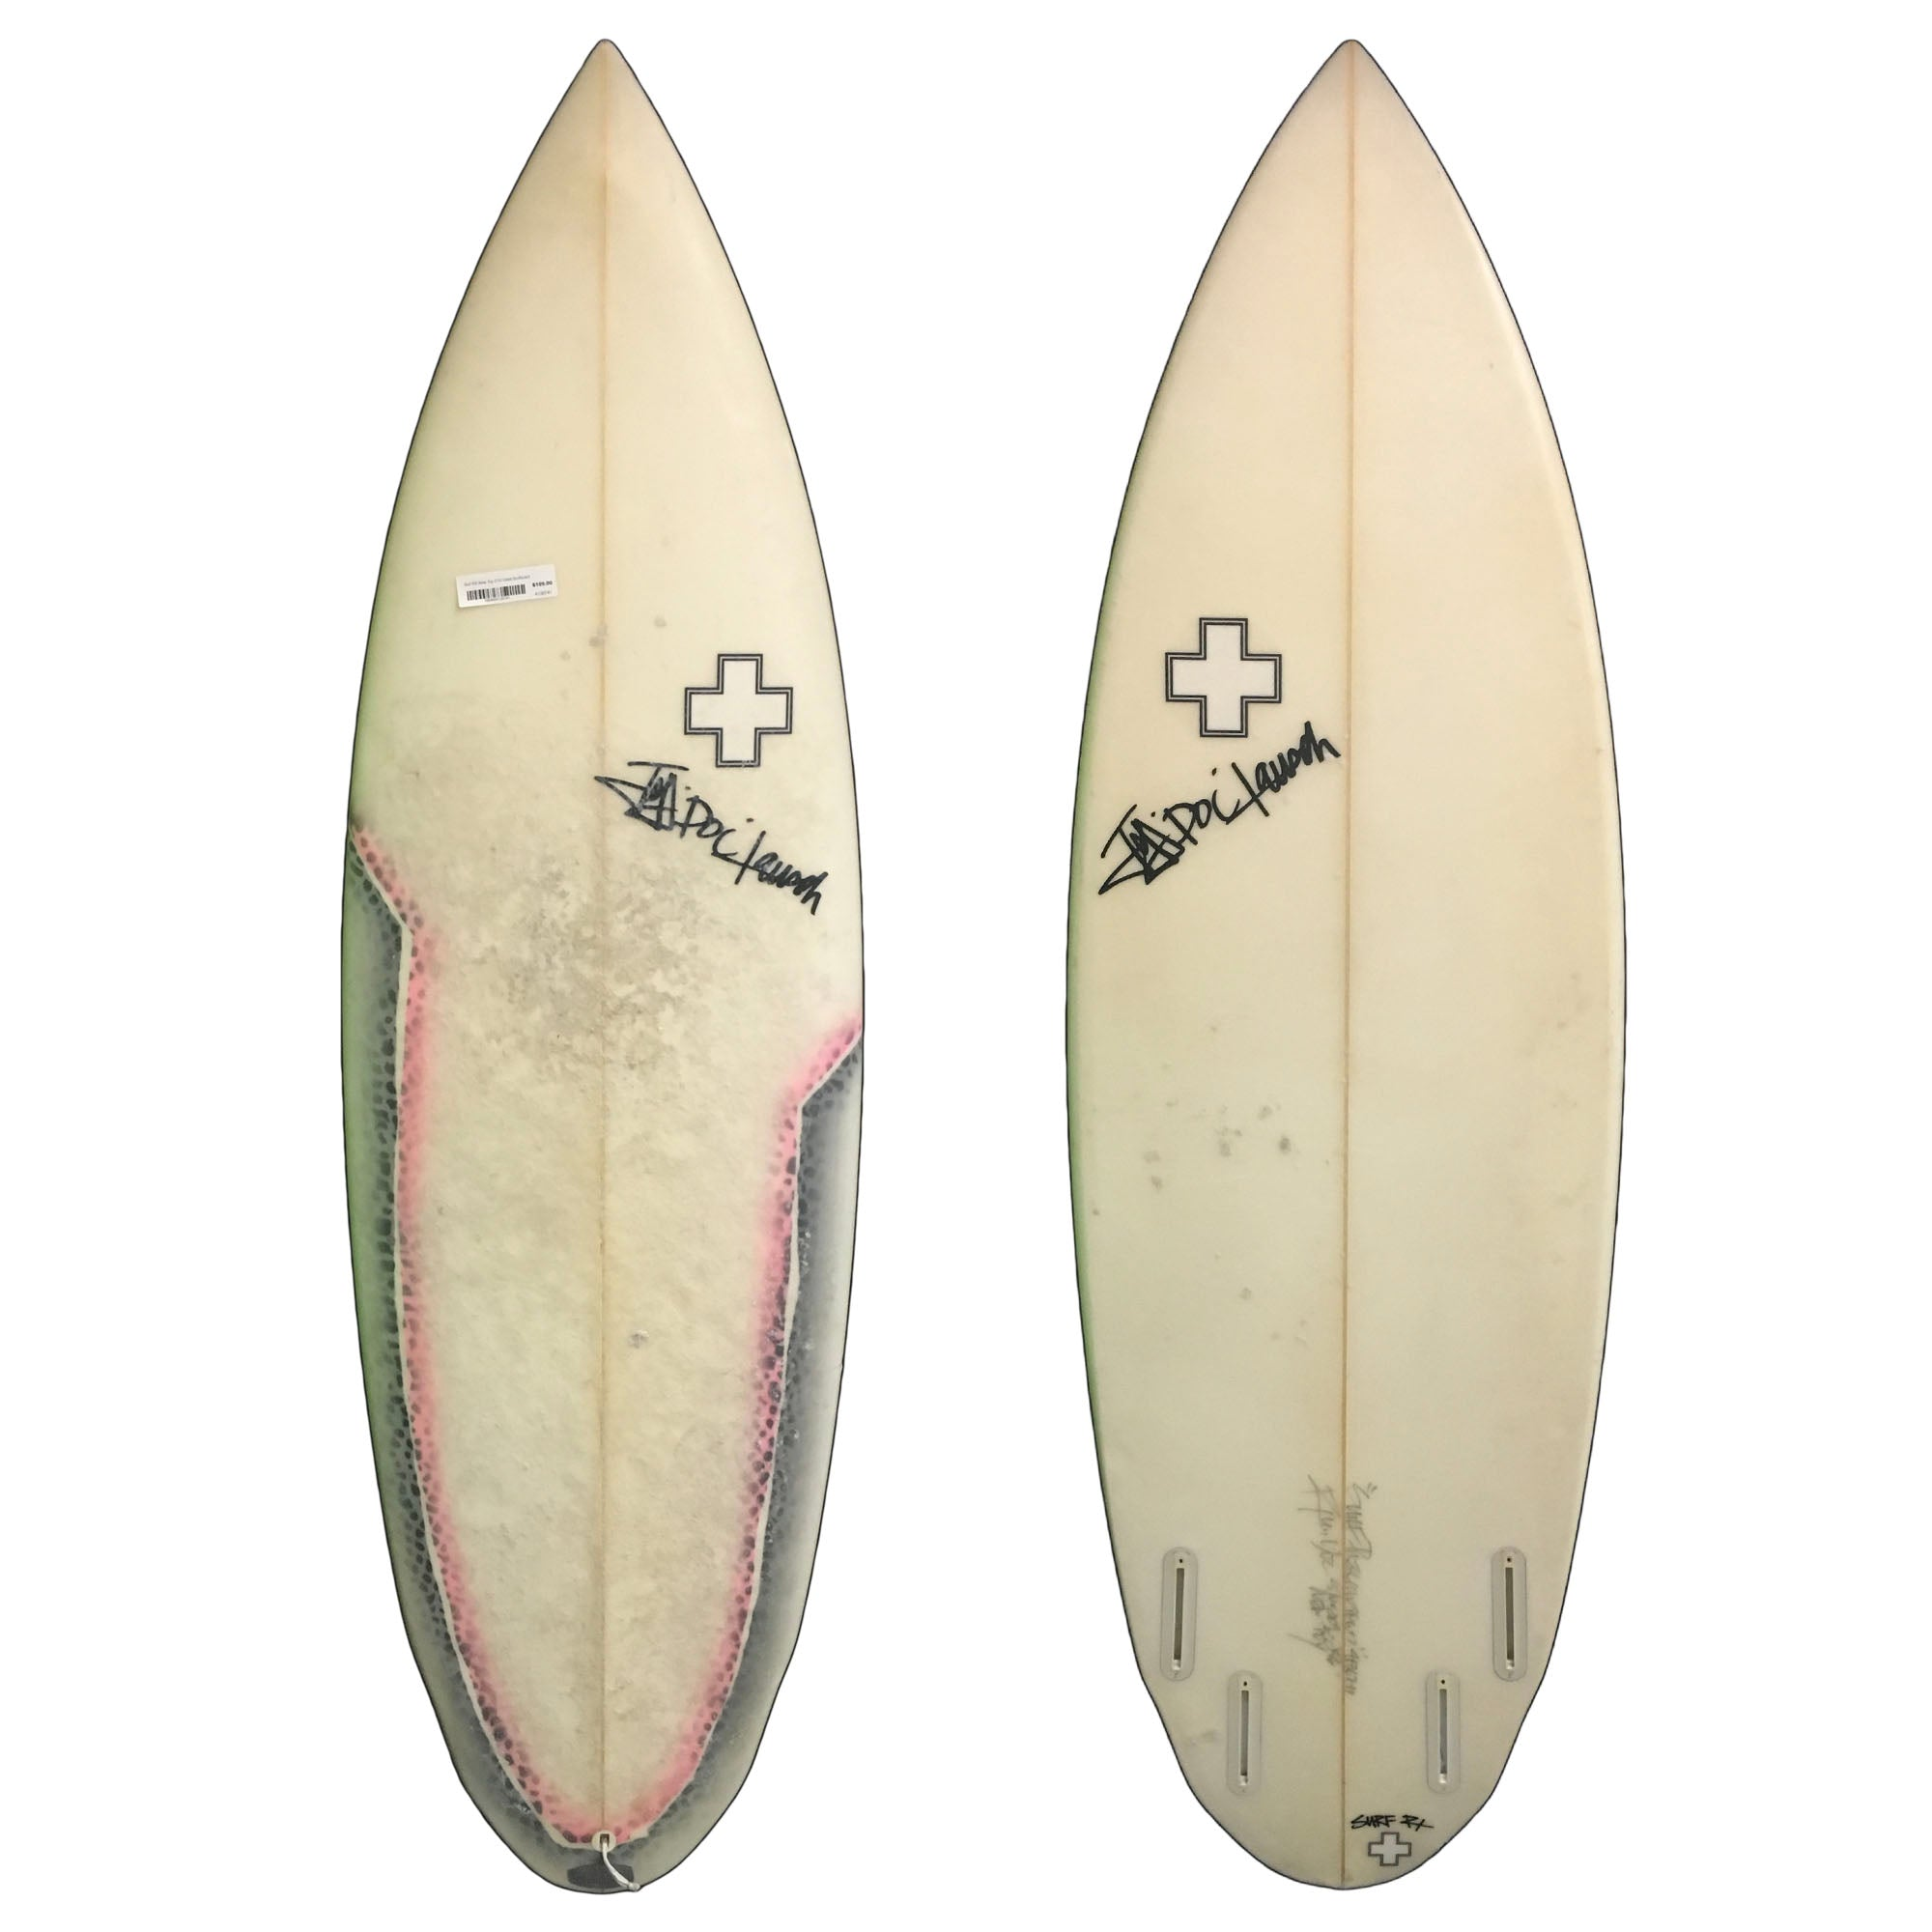 Surf Prescriptions New Toy 5'10 Used Surfboard